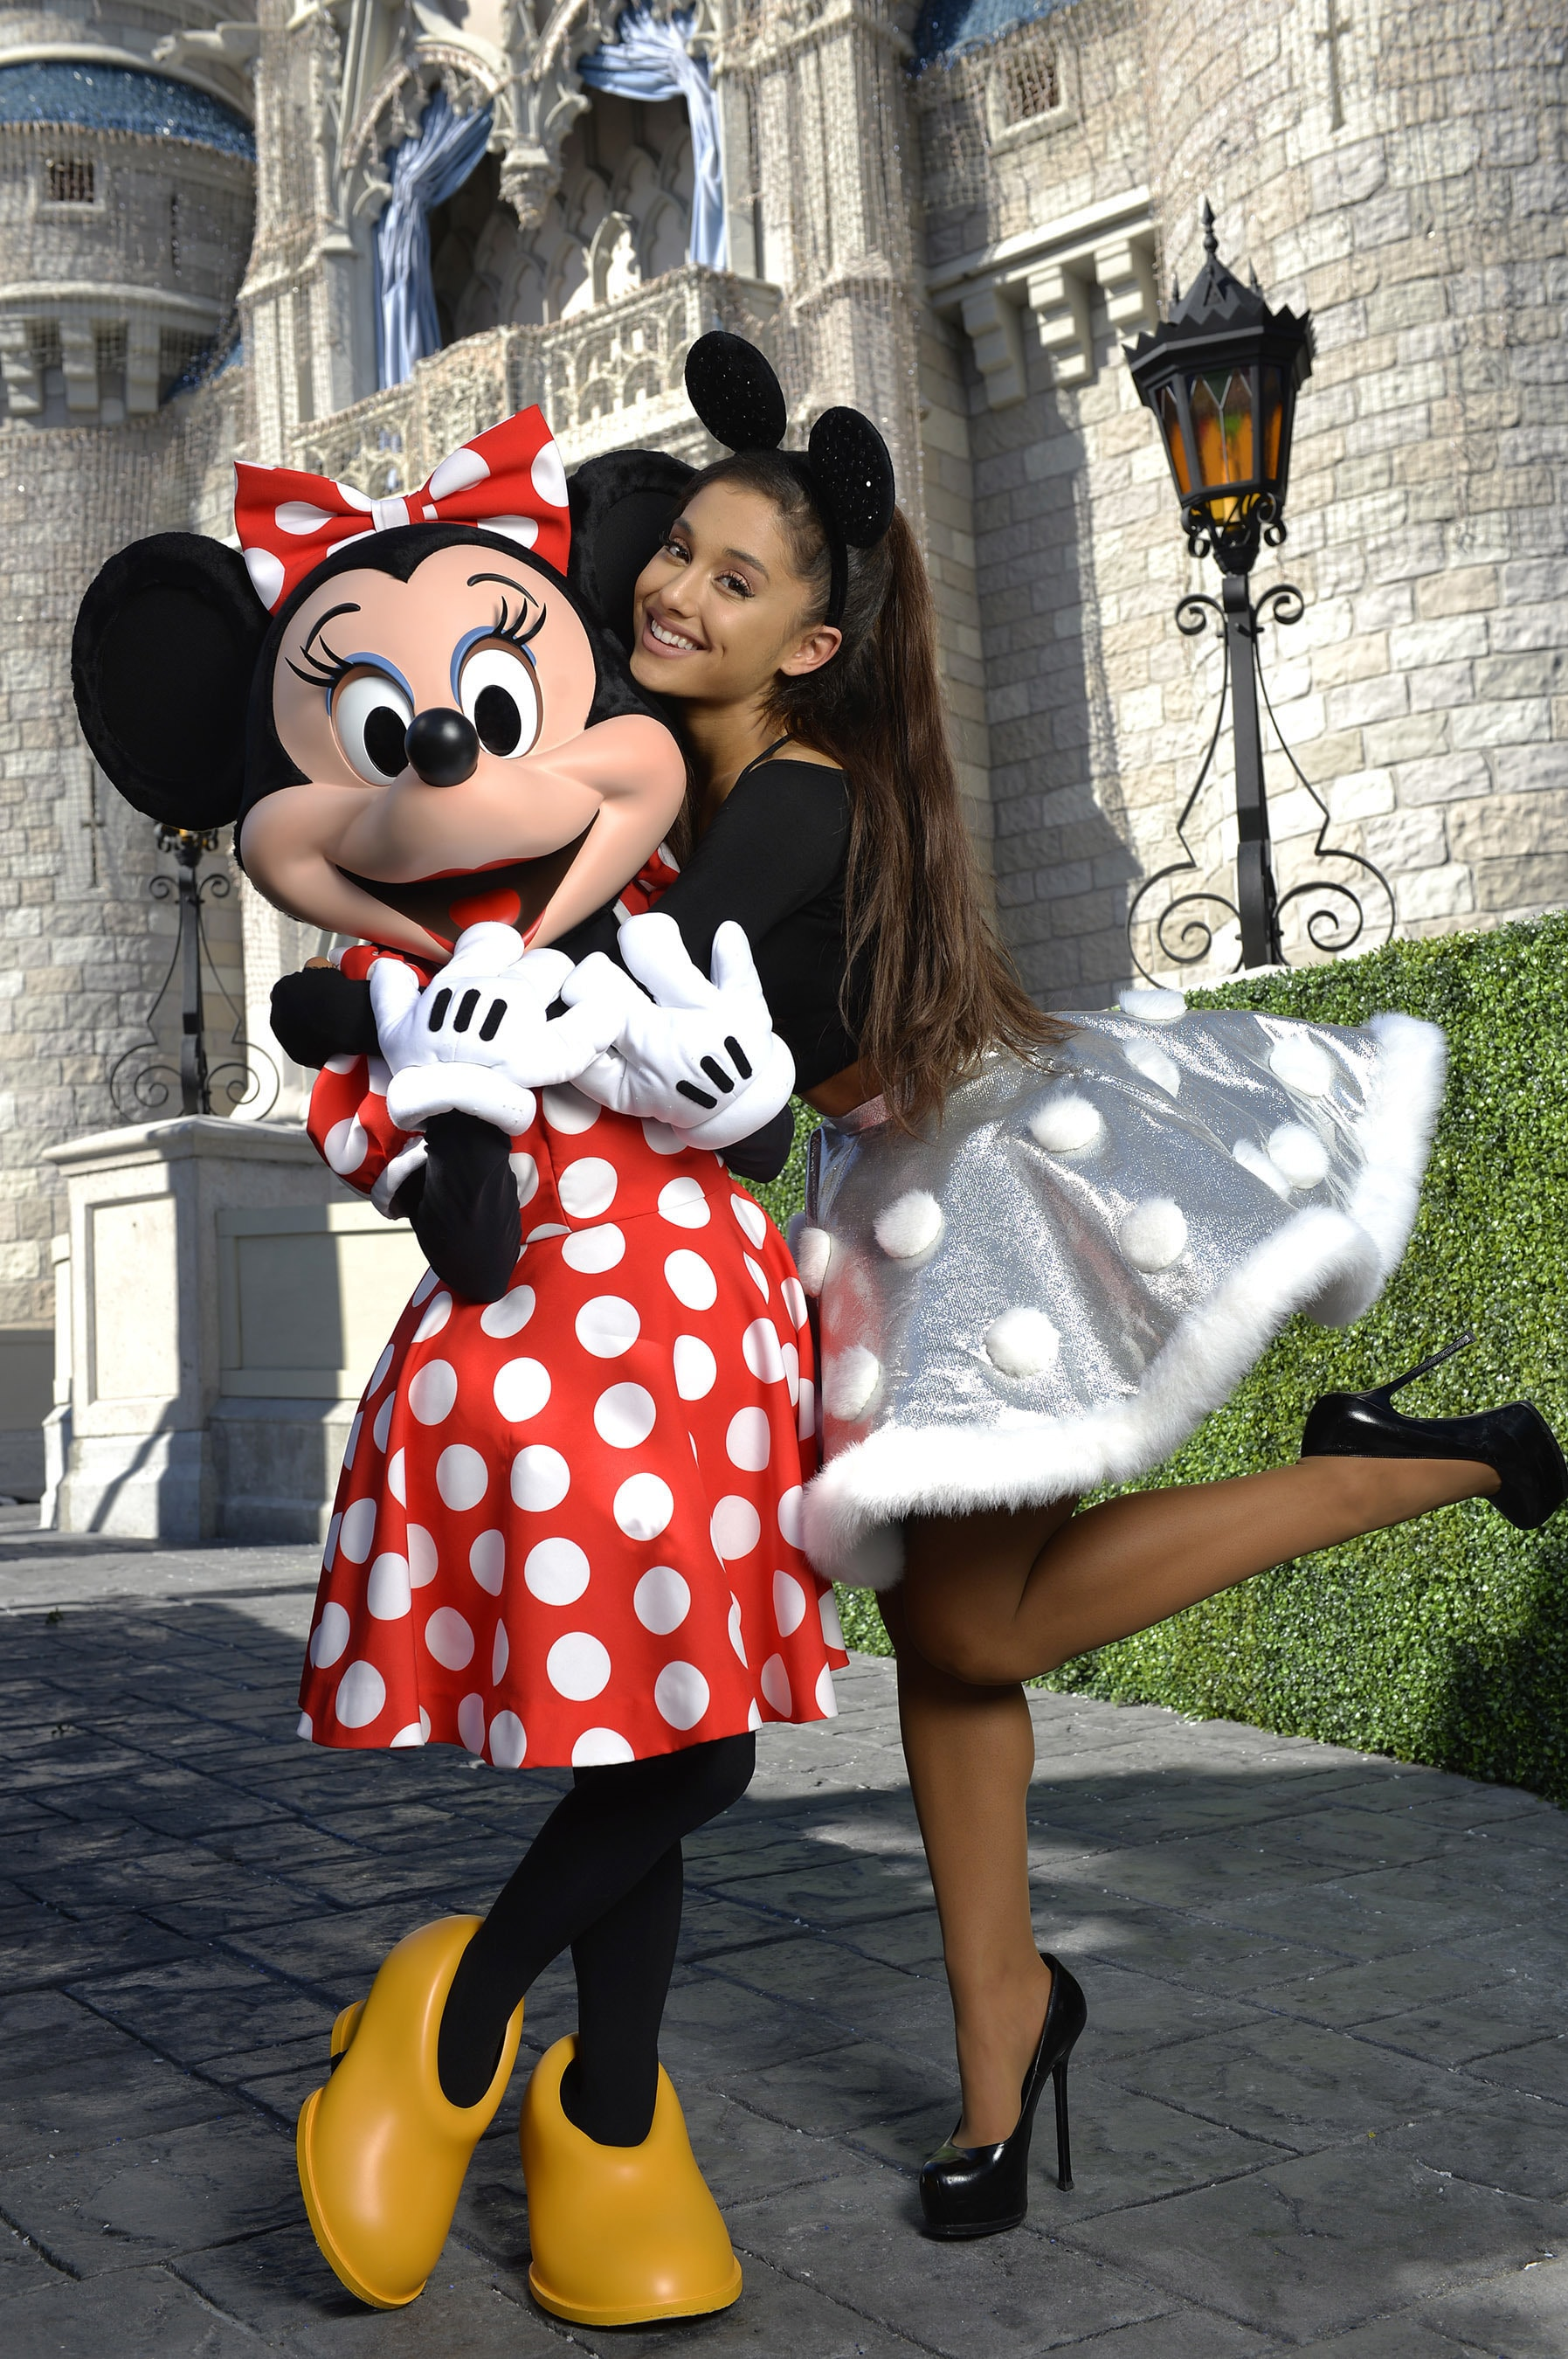 12, 2015 with Minnie Mouse during a break from taping